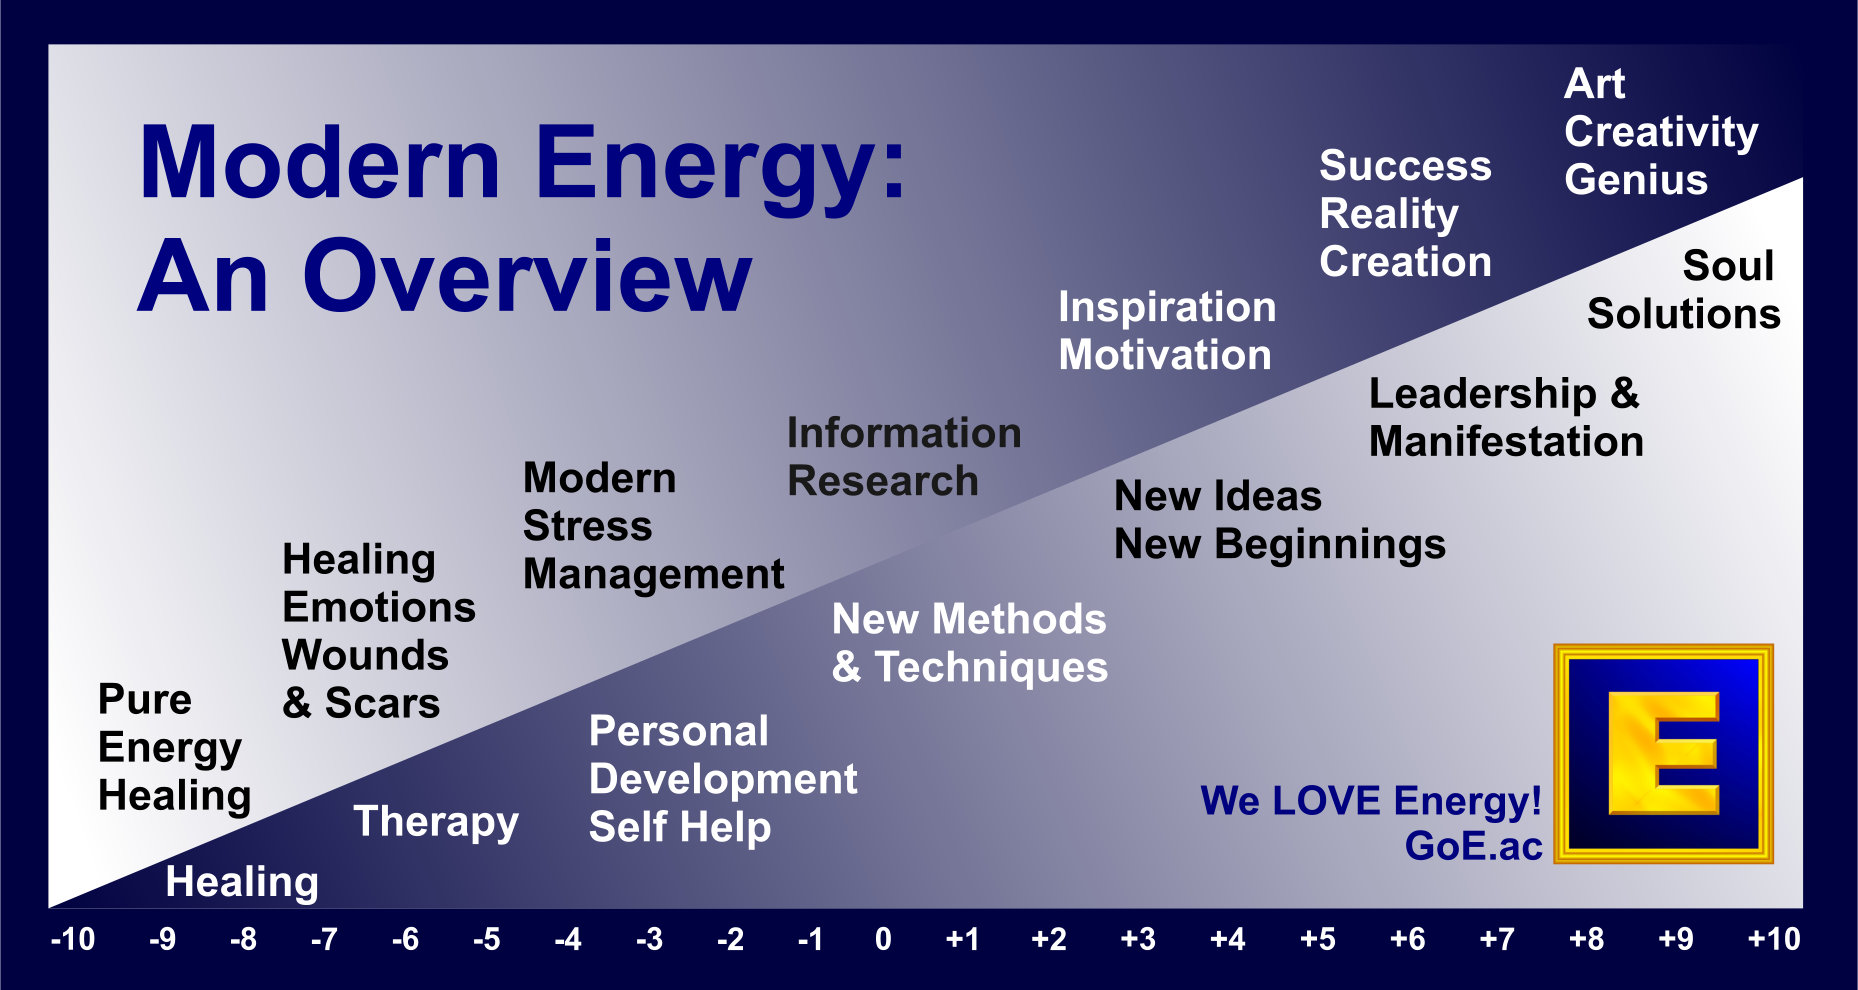 Modern Energy: What We Do